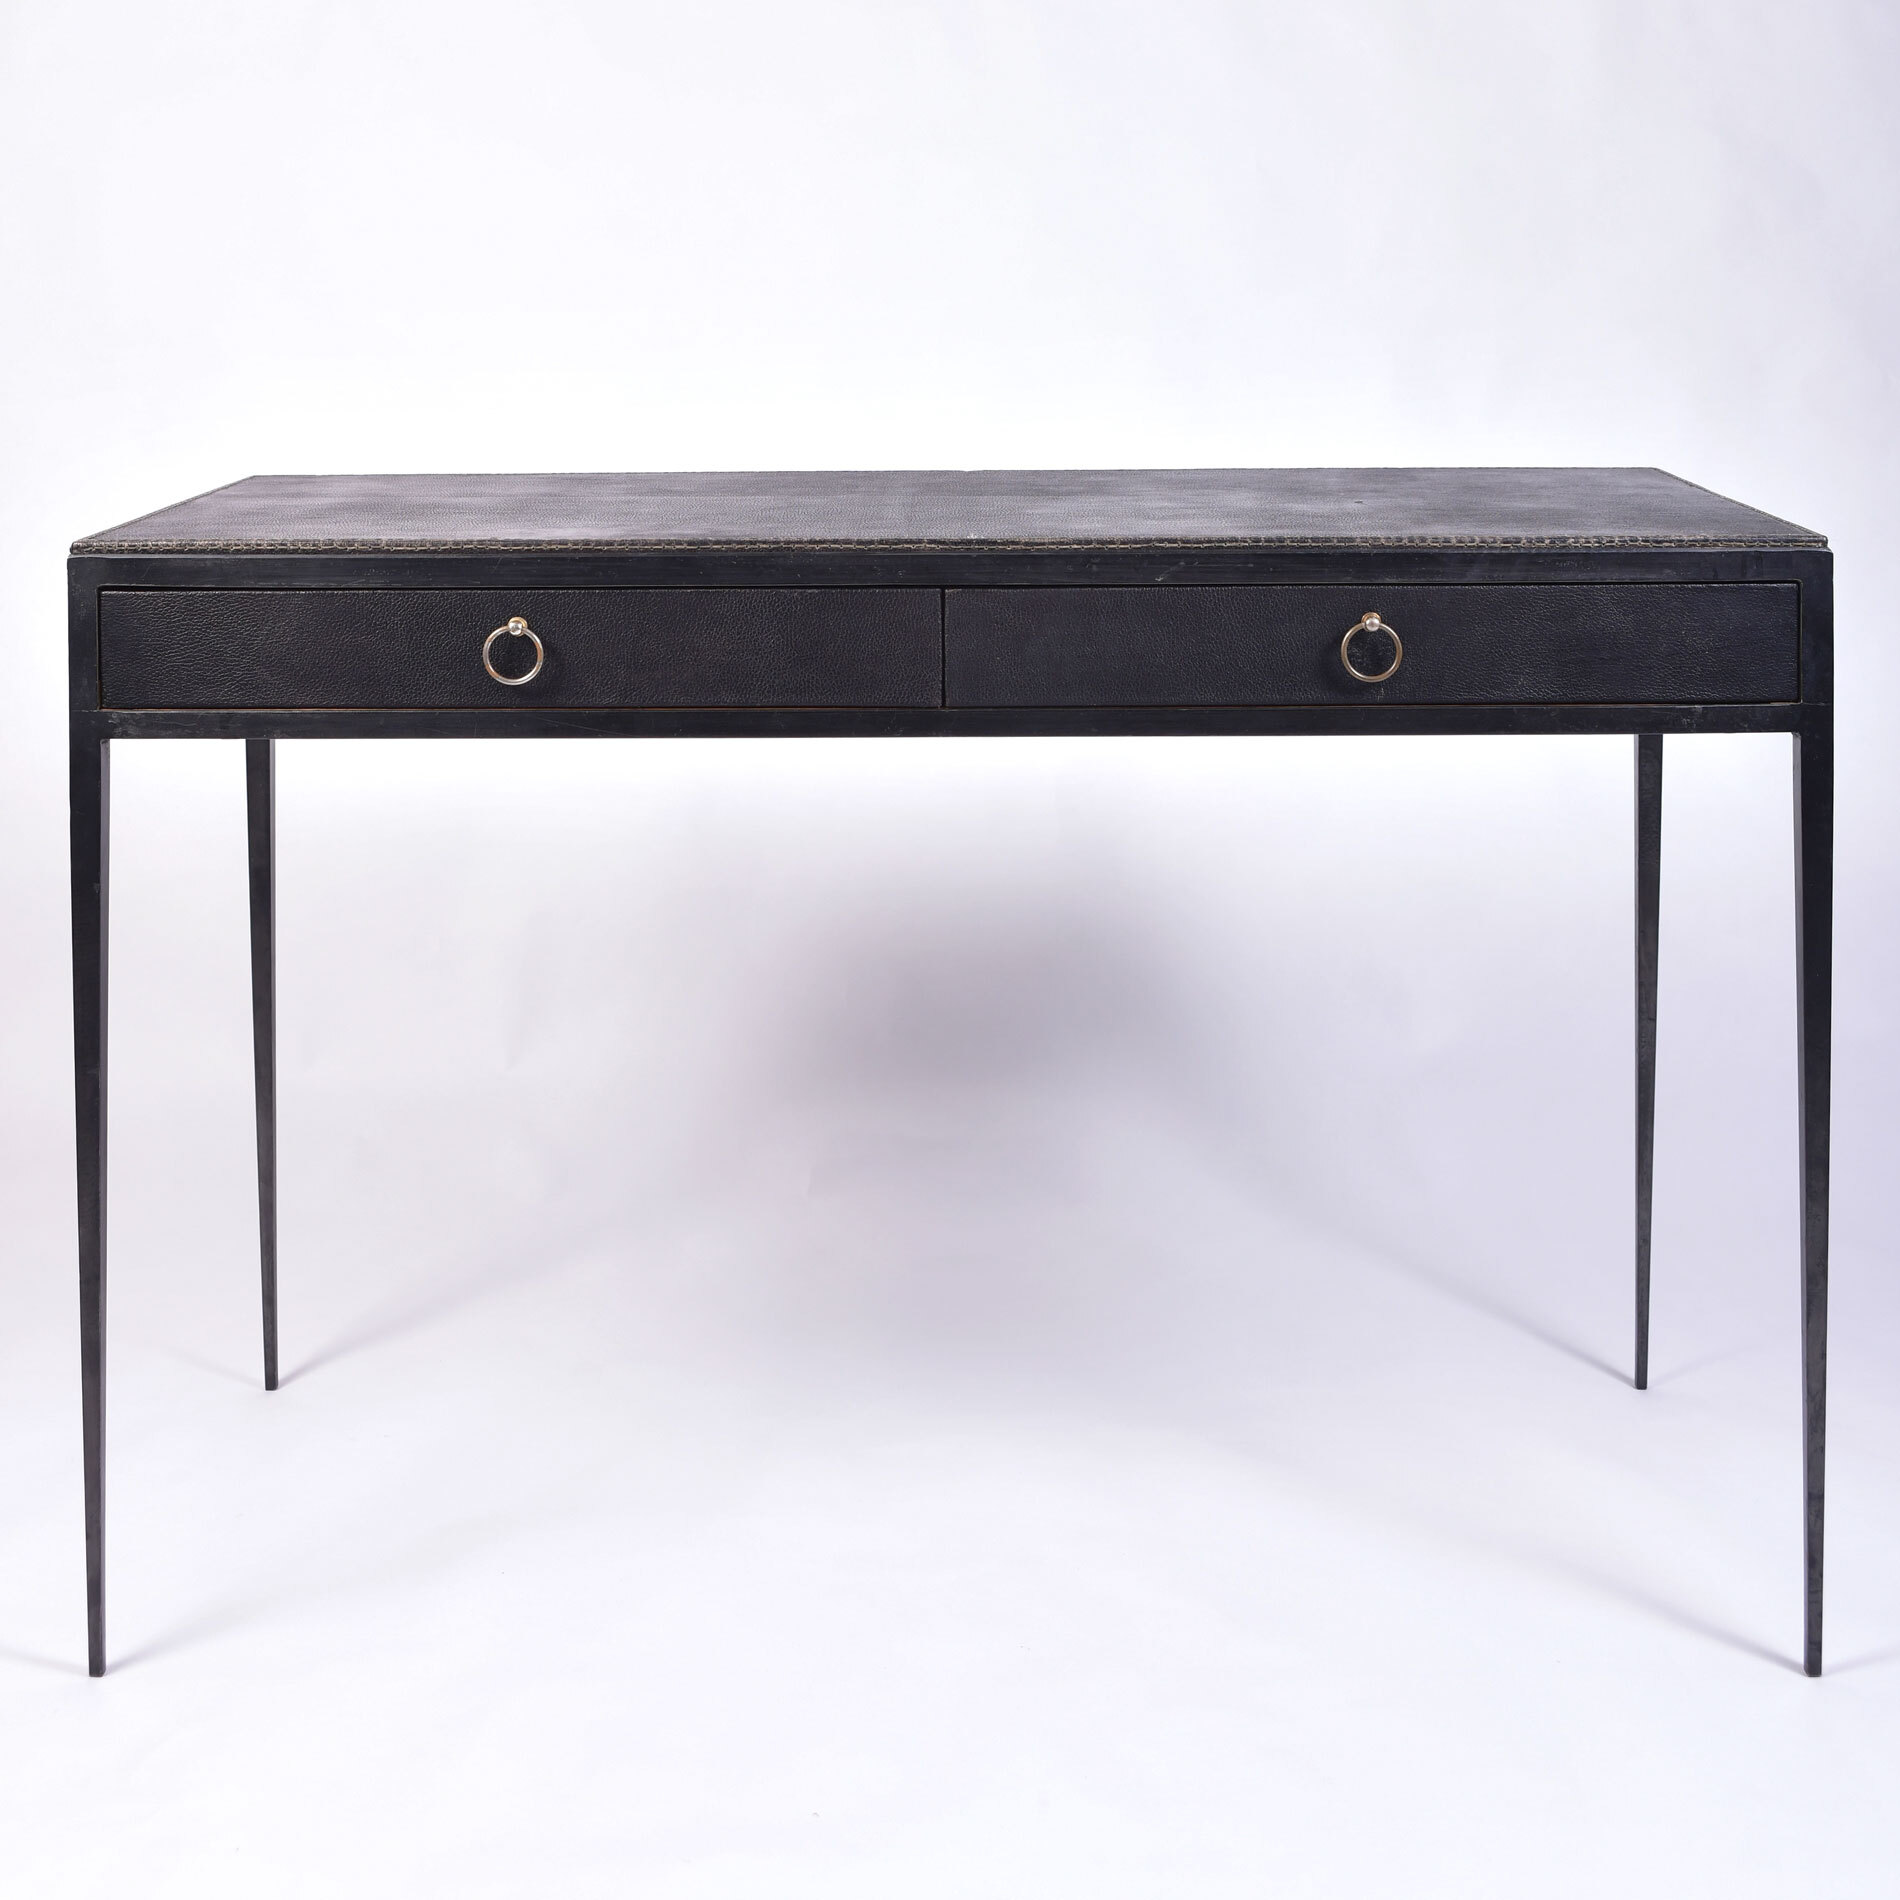 The image for Jmf Leather Desk 01